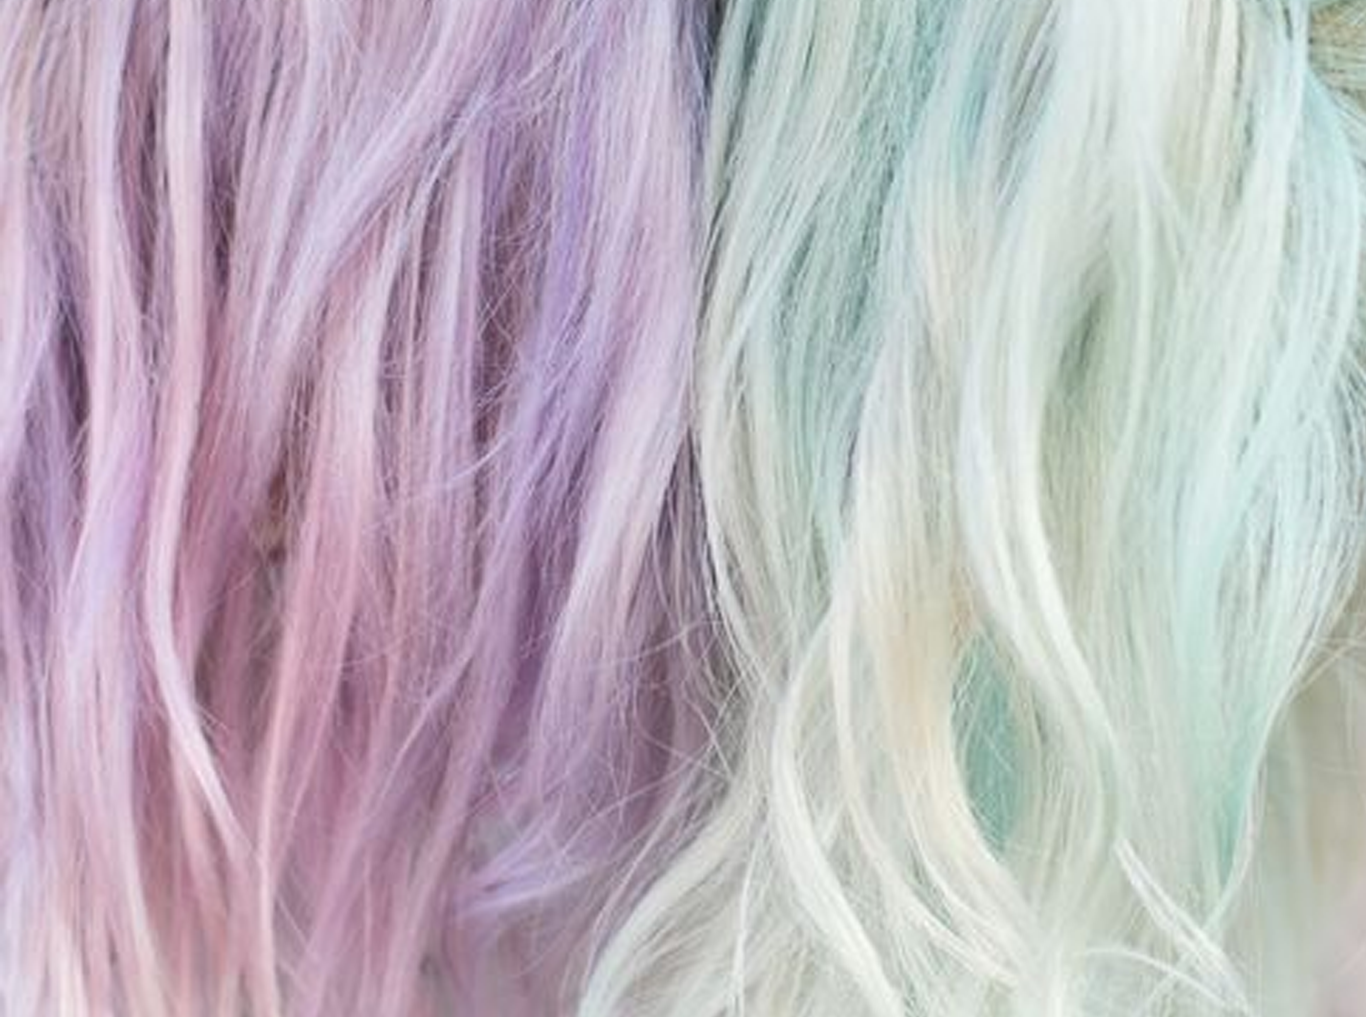 worries about dyeing hair pastel shades